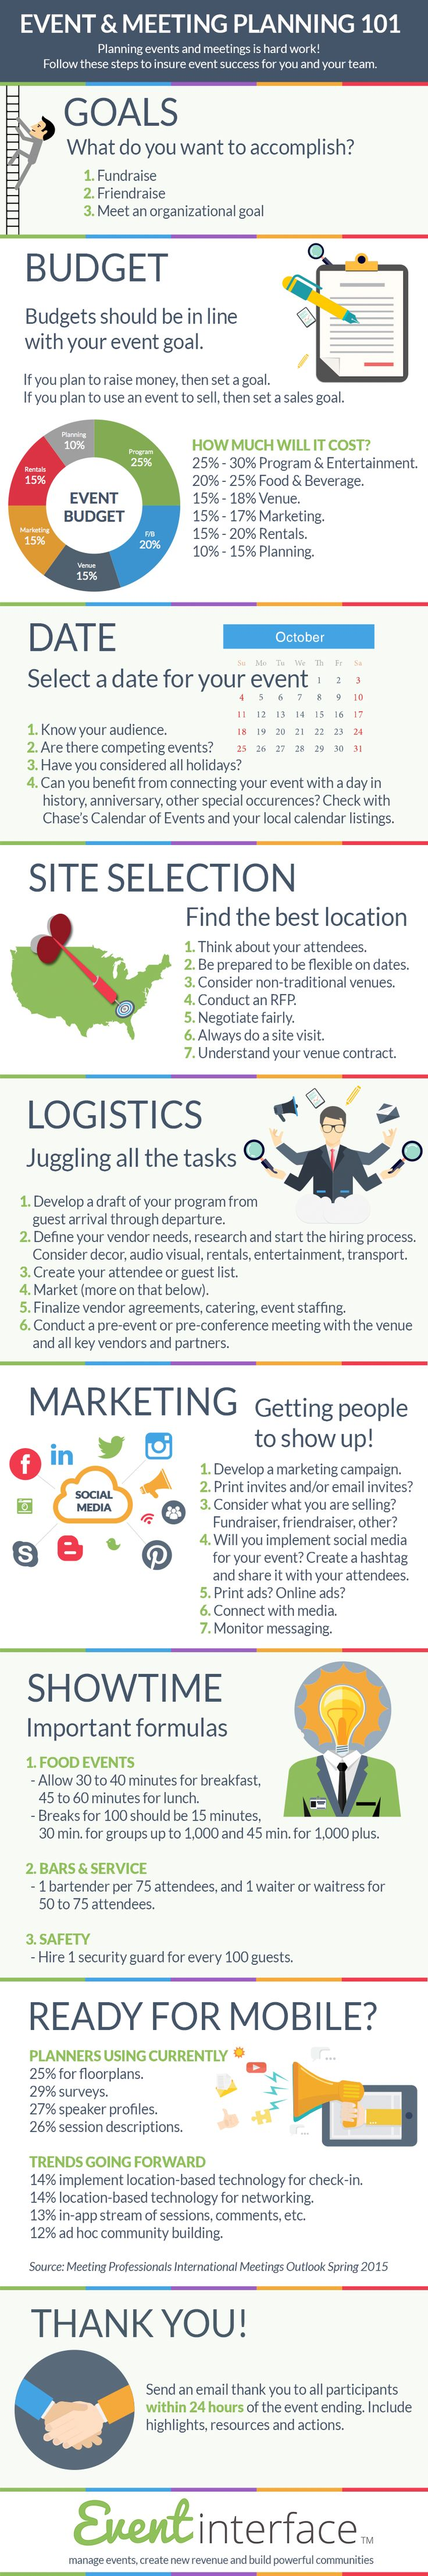 Best Event Planning Tips Images On   Event Marketing